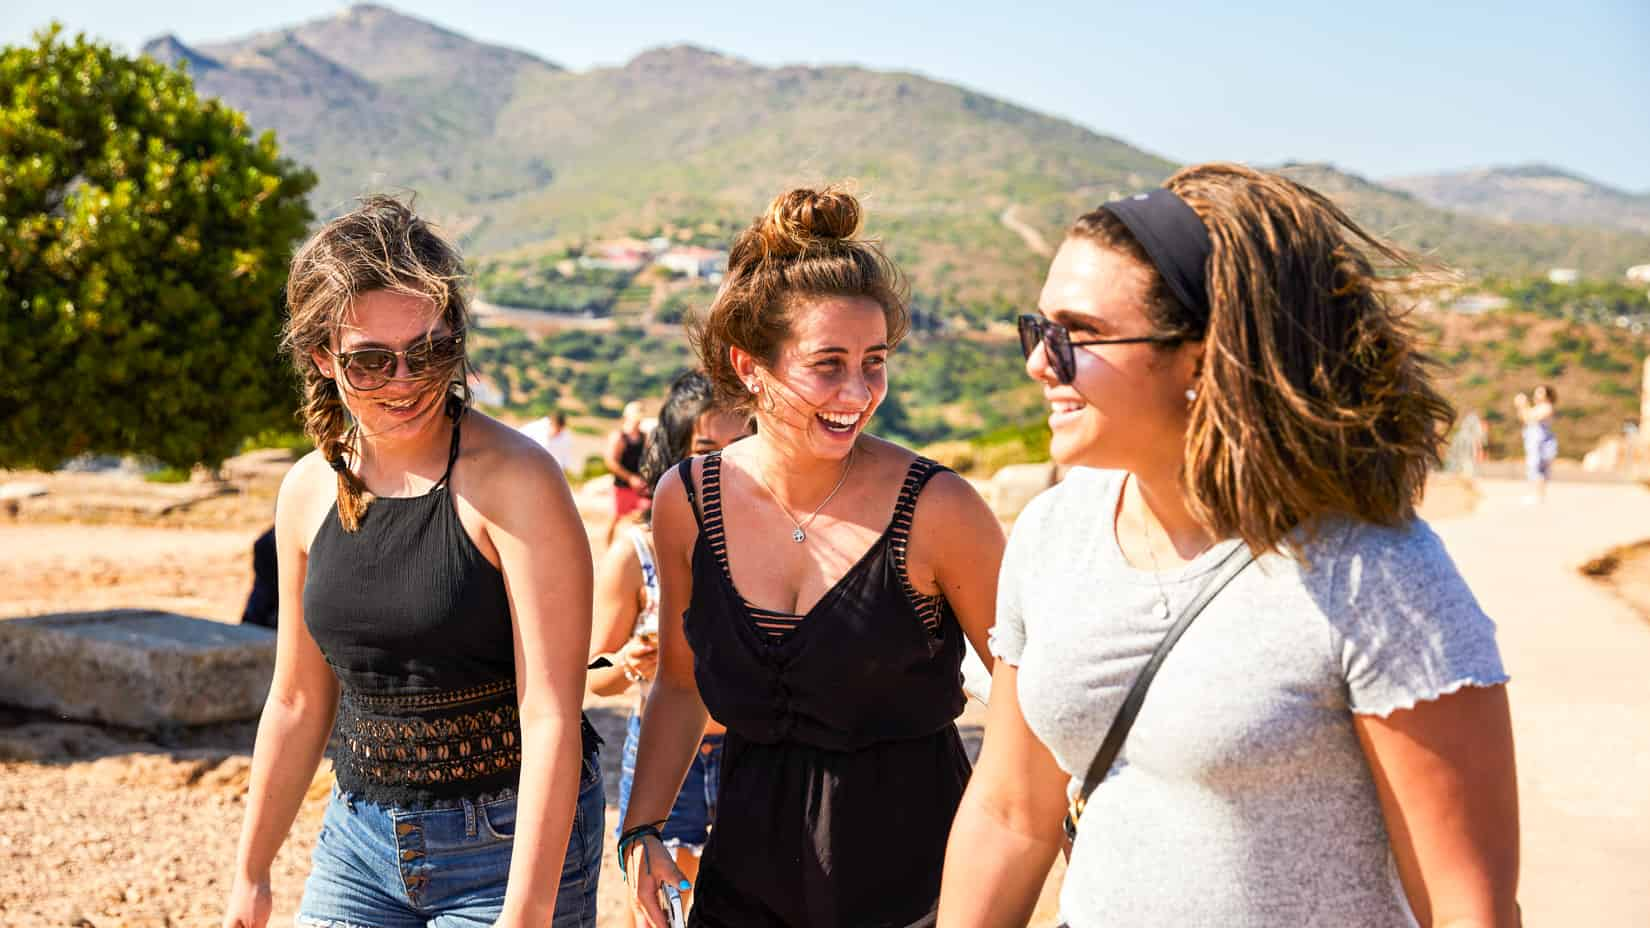 Students walking and smiling on an excursion.